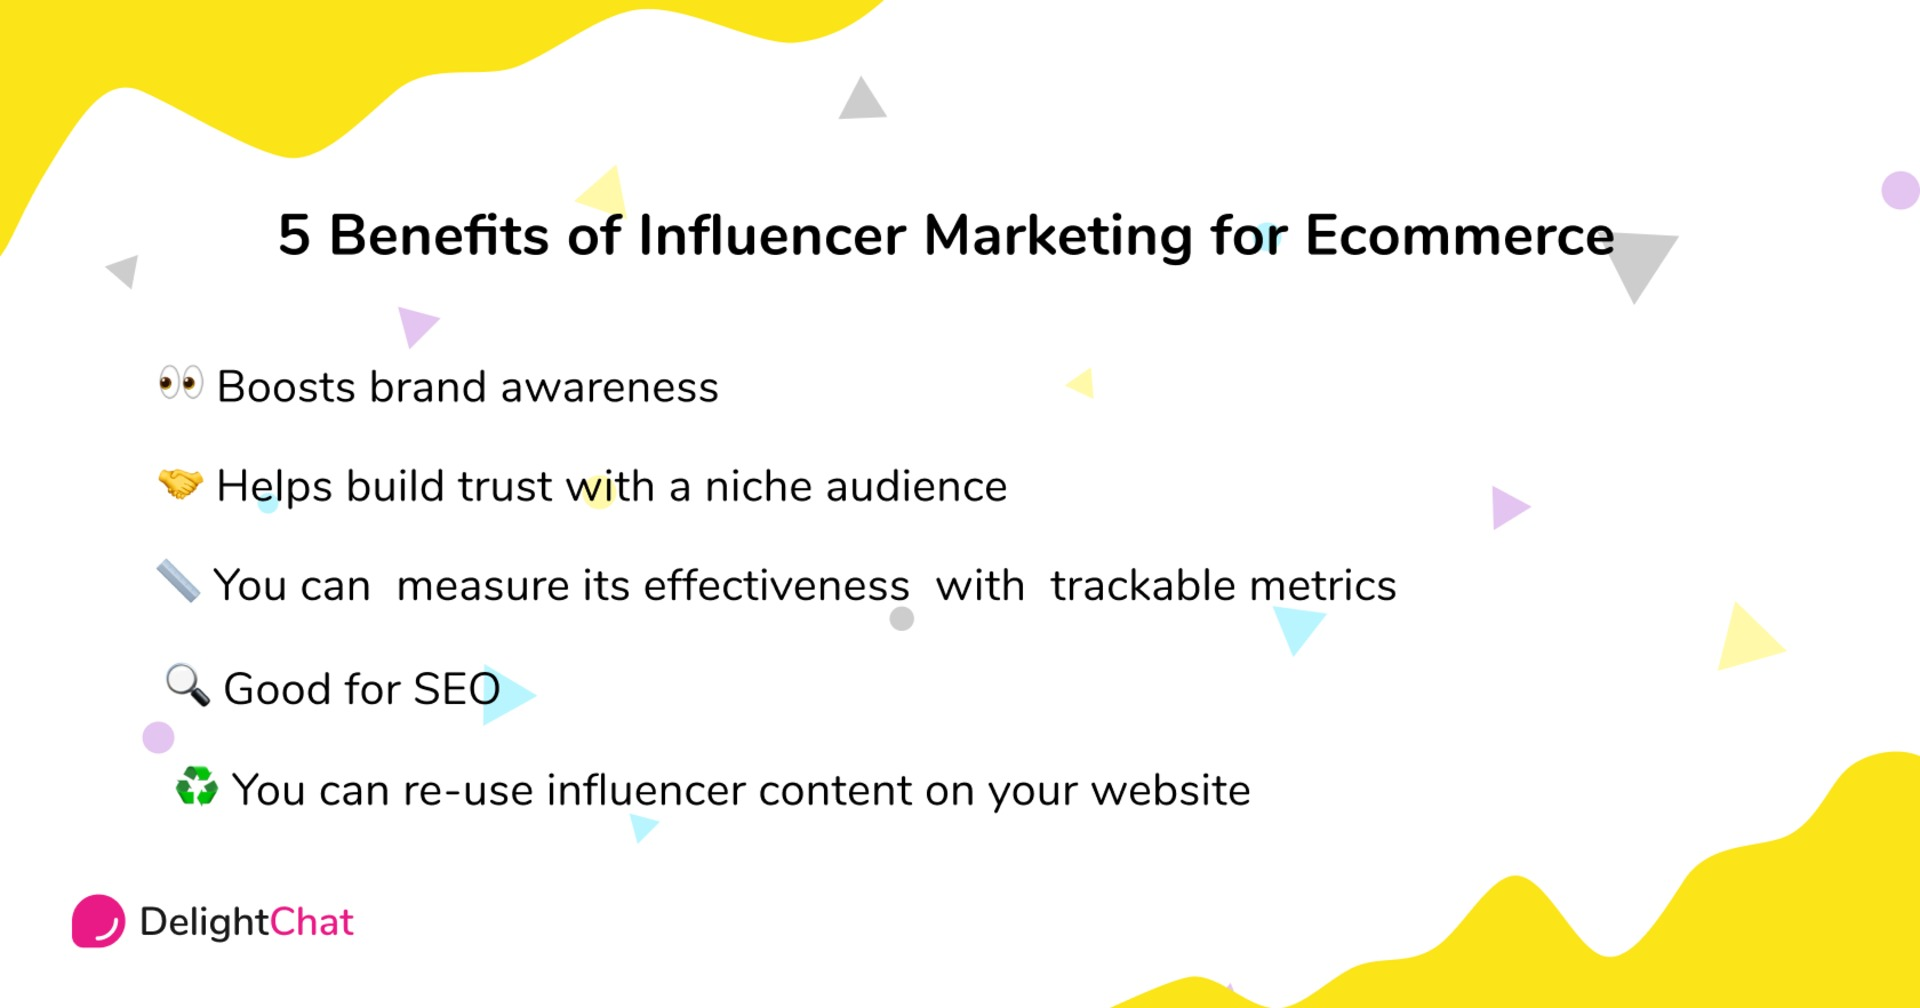 Winkl on Influencer Marketing - Benefits of Influencer Marketing for Ecommerce